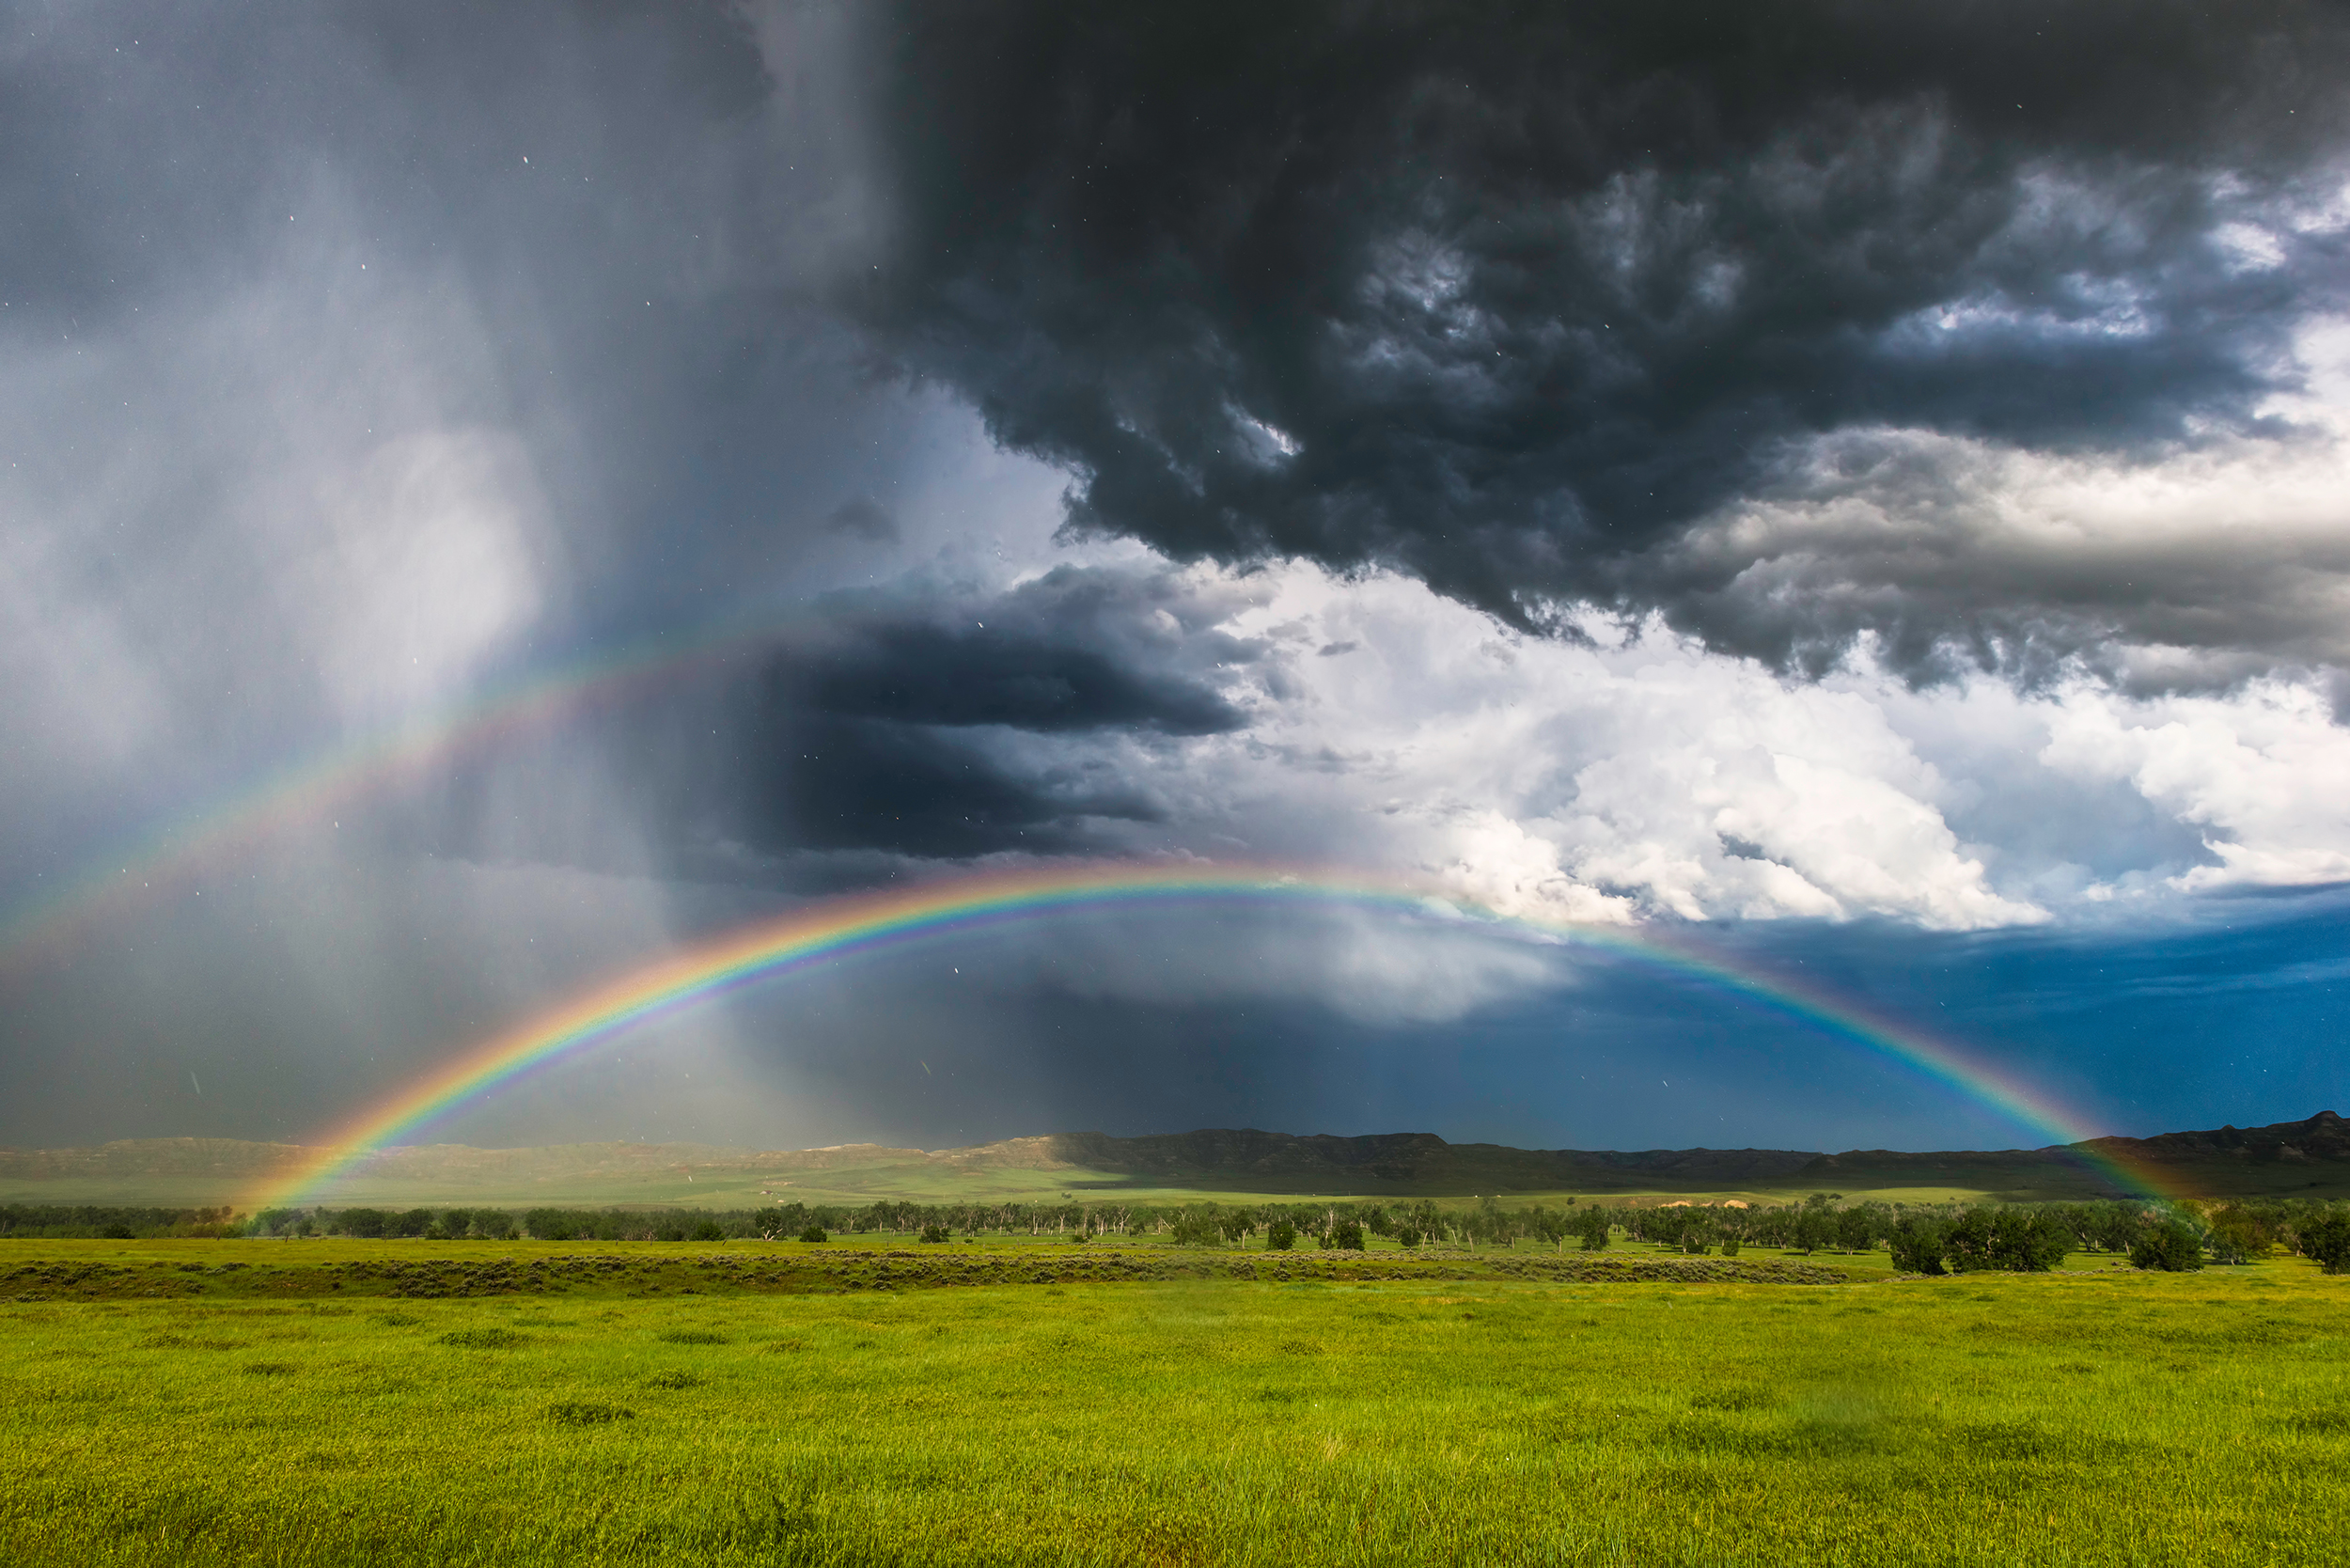 Travel Series Storm Photography Tips Mike Mezeul Ii